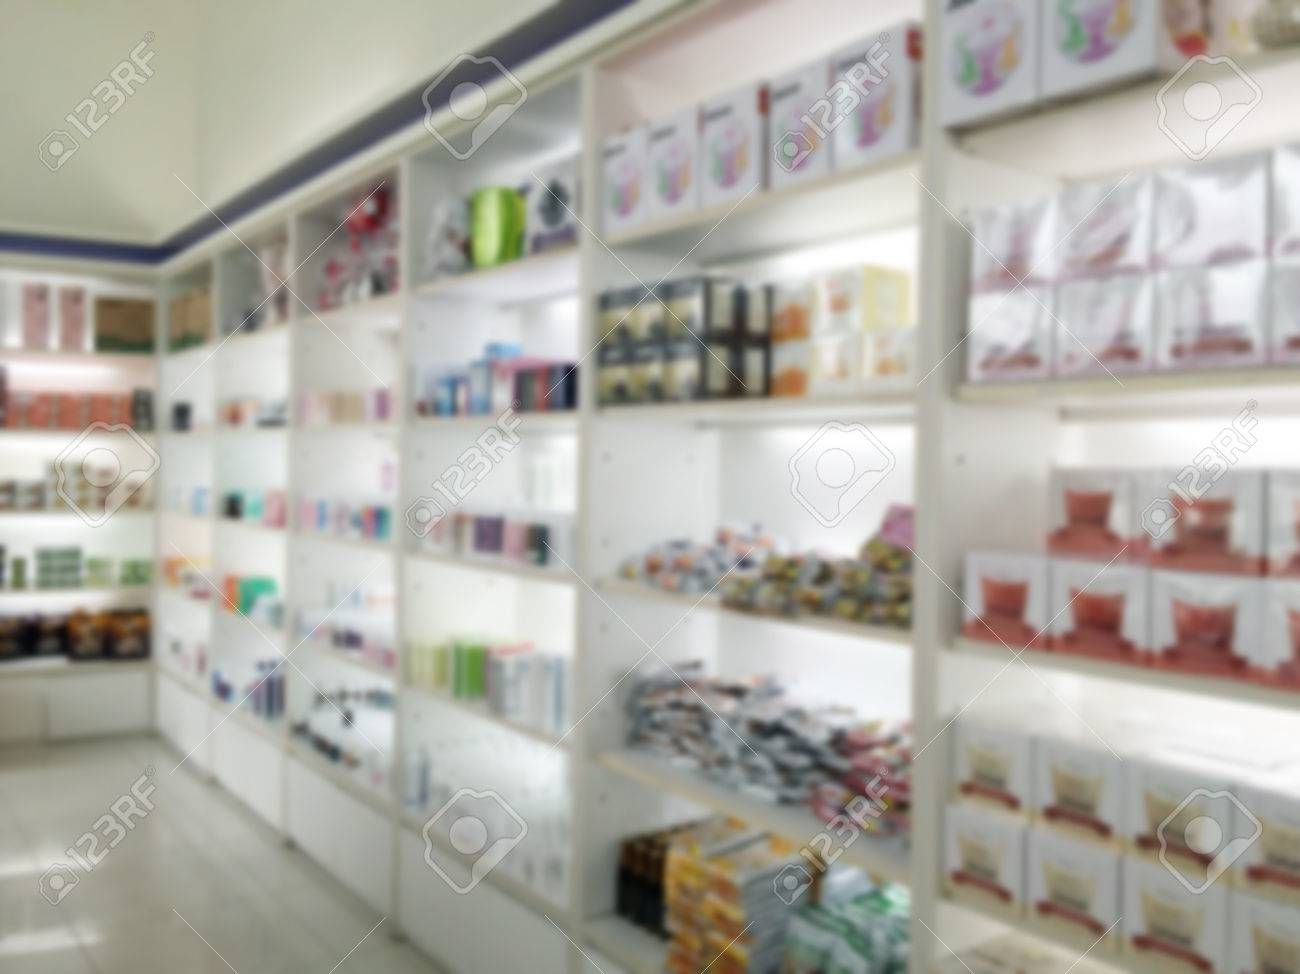 Superb Blurry Medicine Cabinet And Store Medicine And Pharmacy Drugstore For  Background Stock Photo   63996035